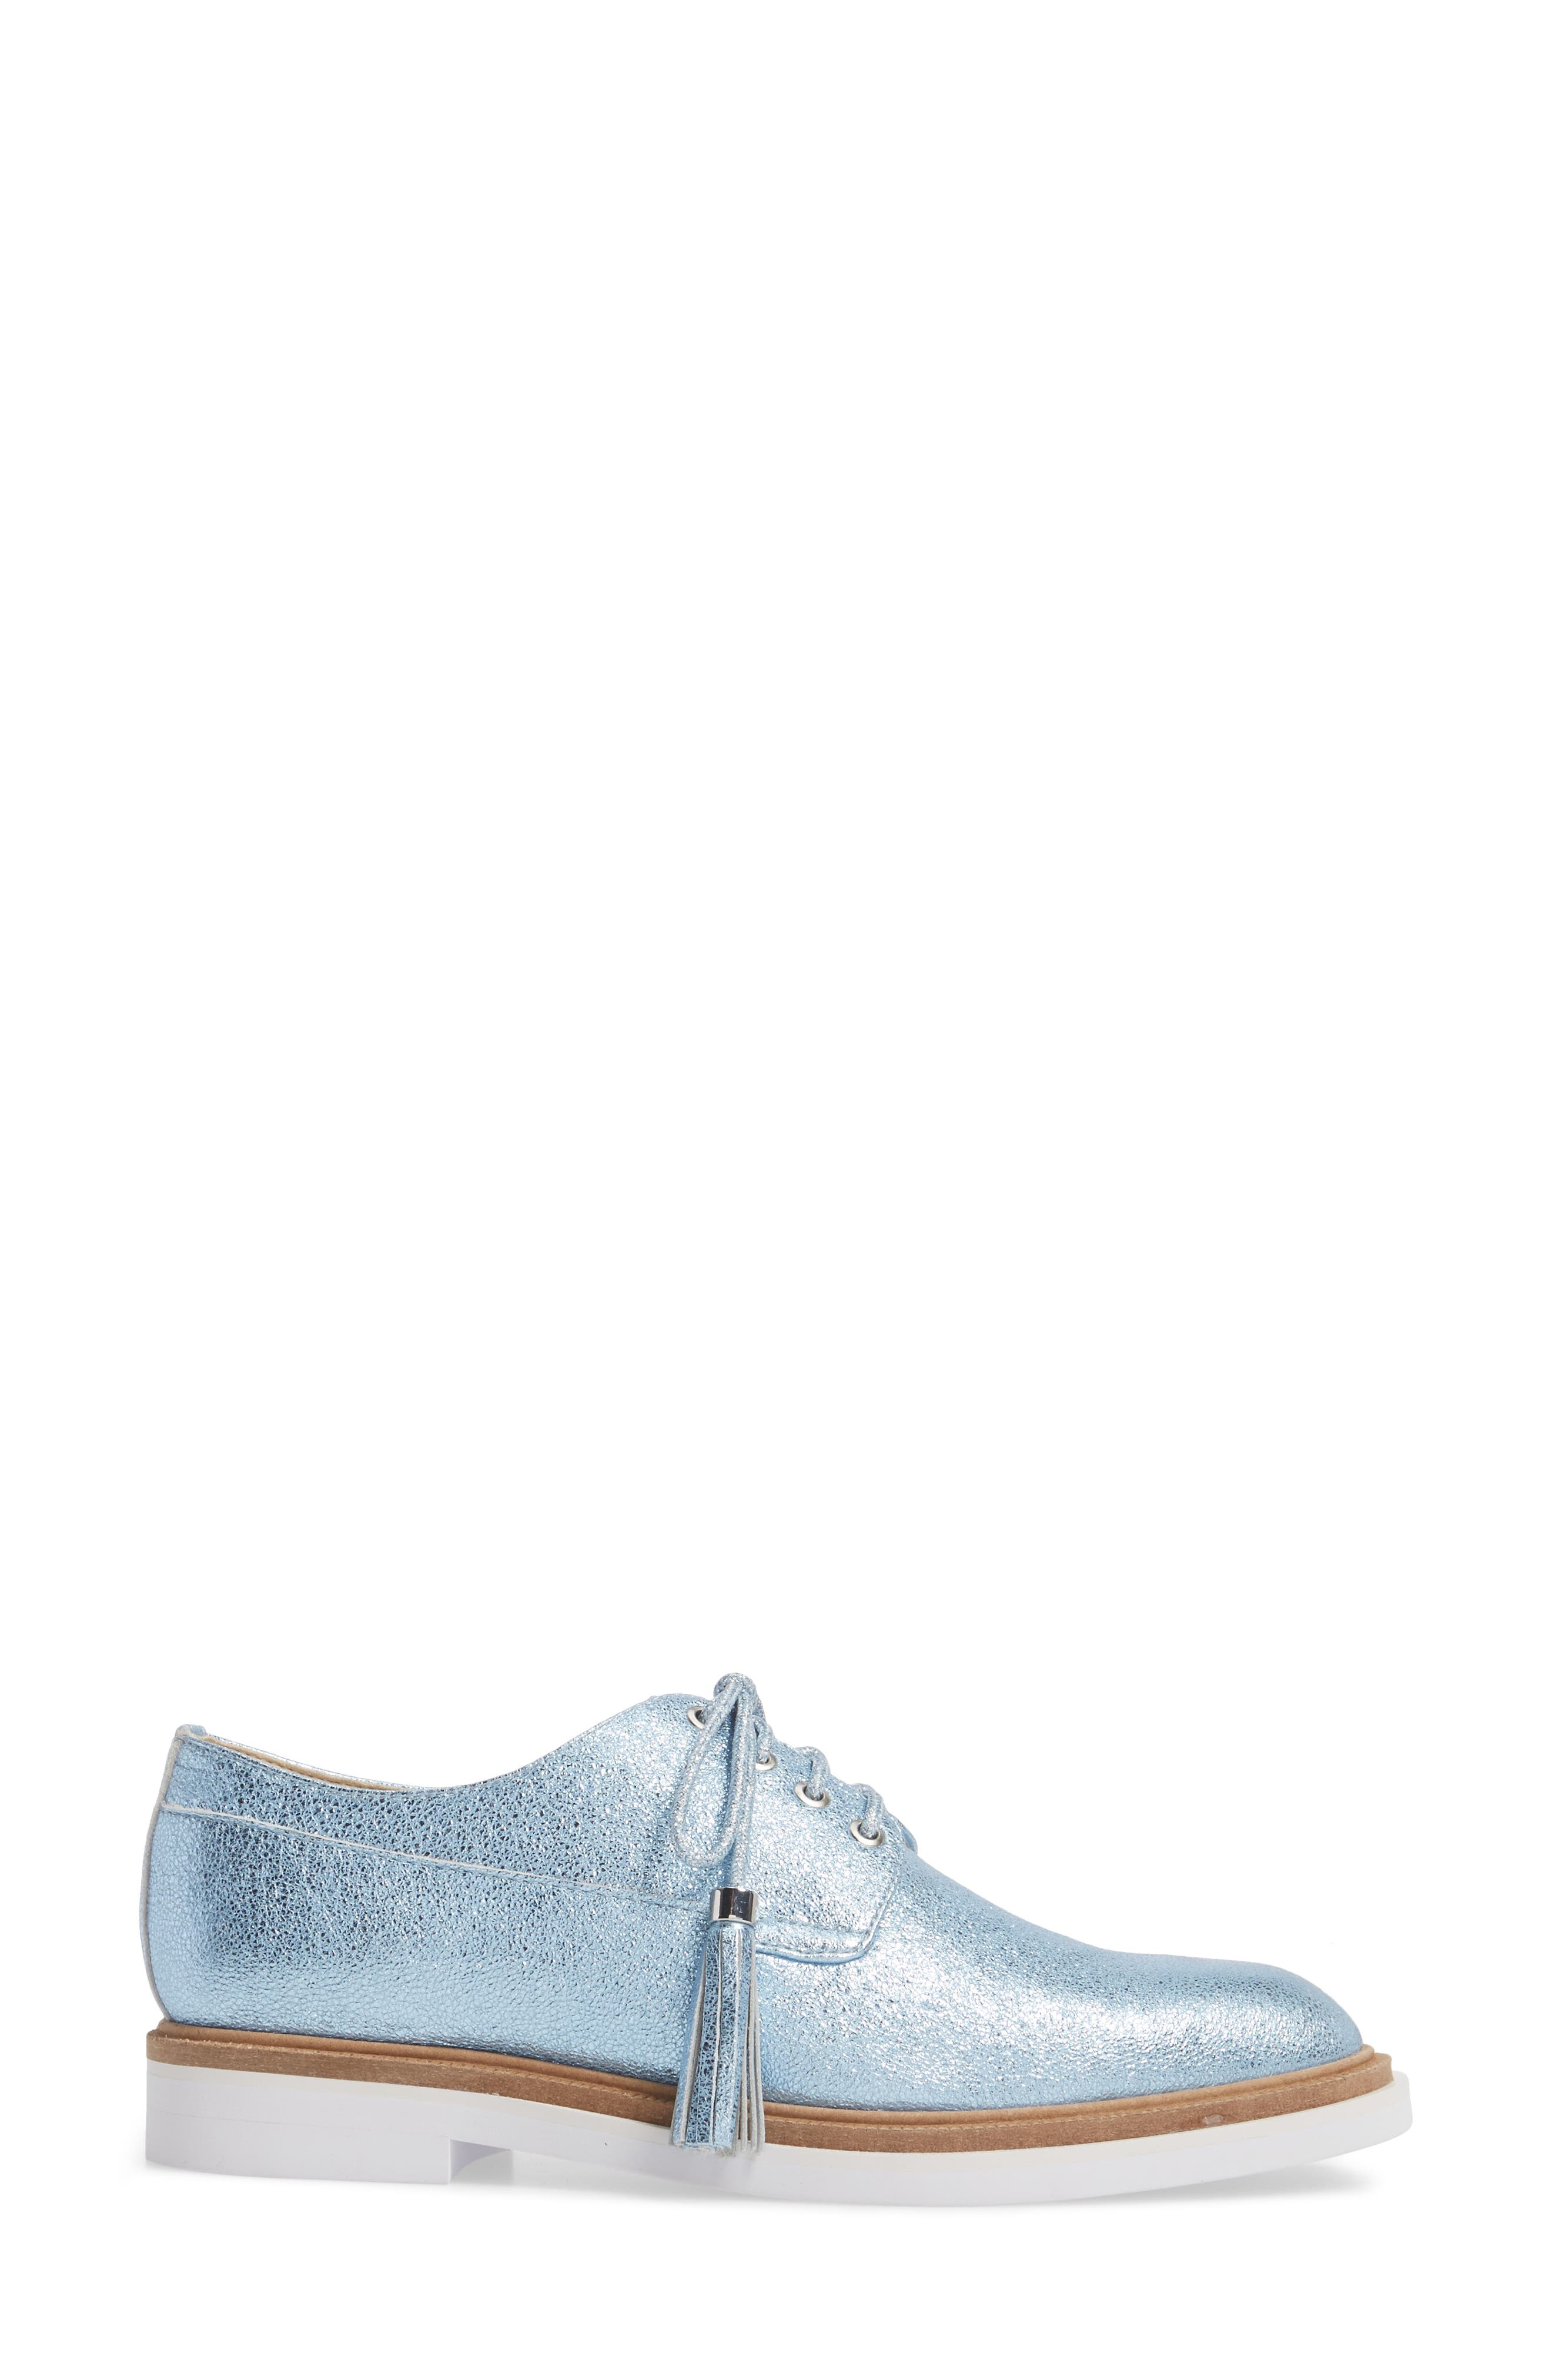 Annie Oxford,                             Alternate thumbnail 3, color,                             Blue Metallic Leather